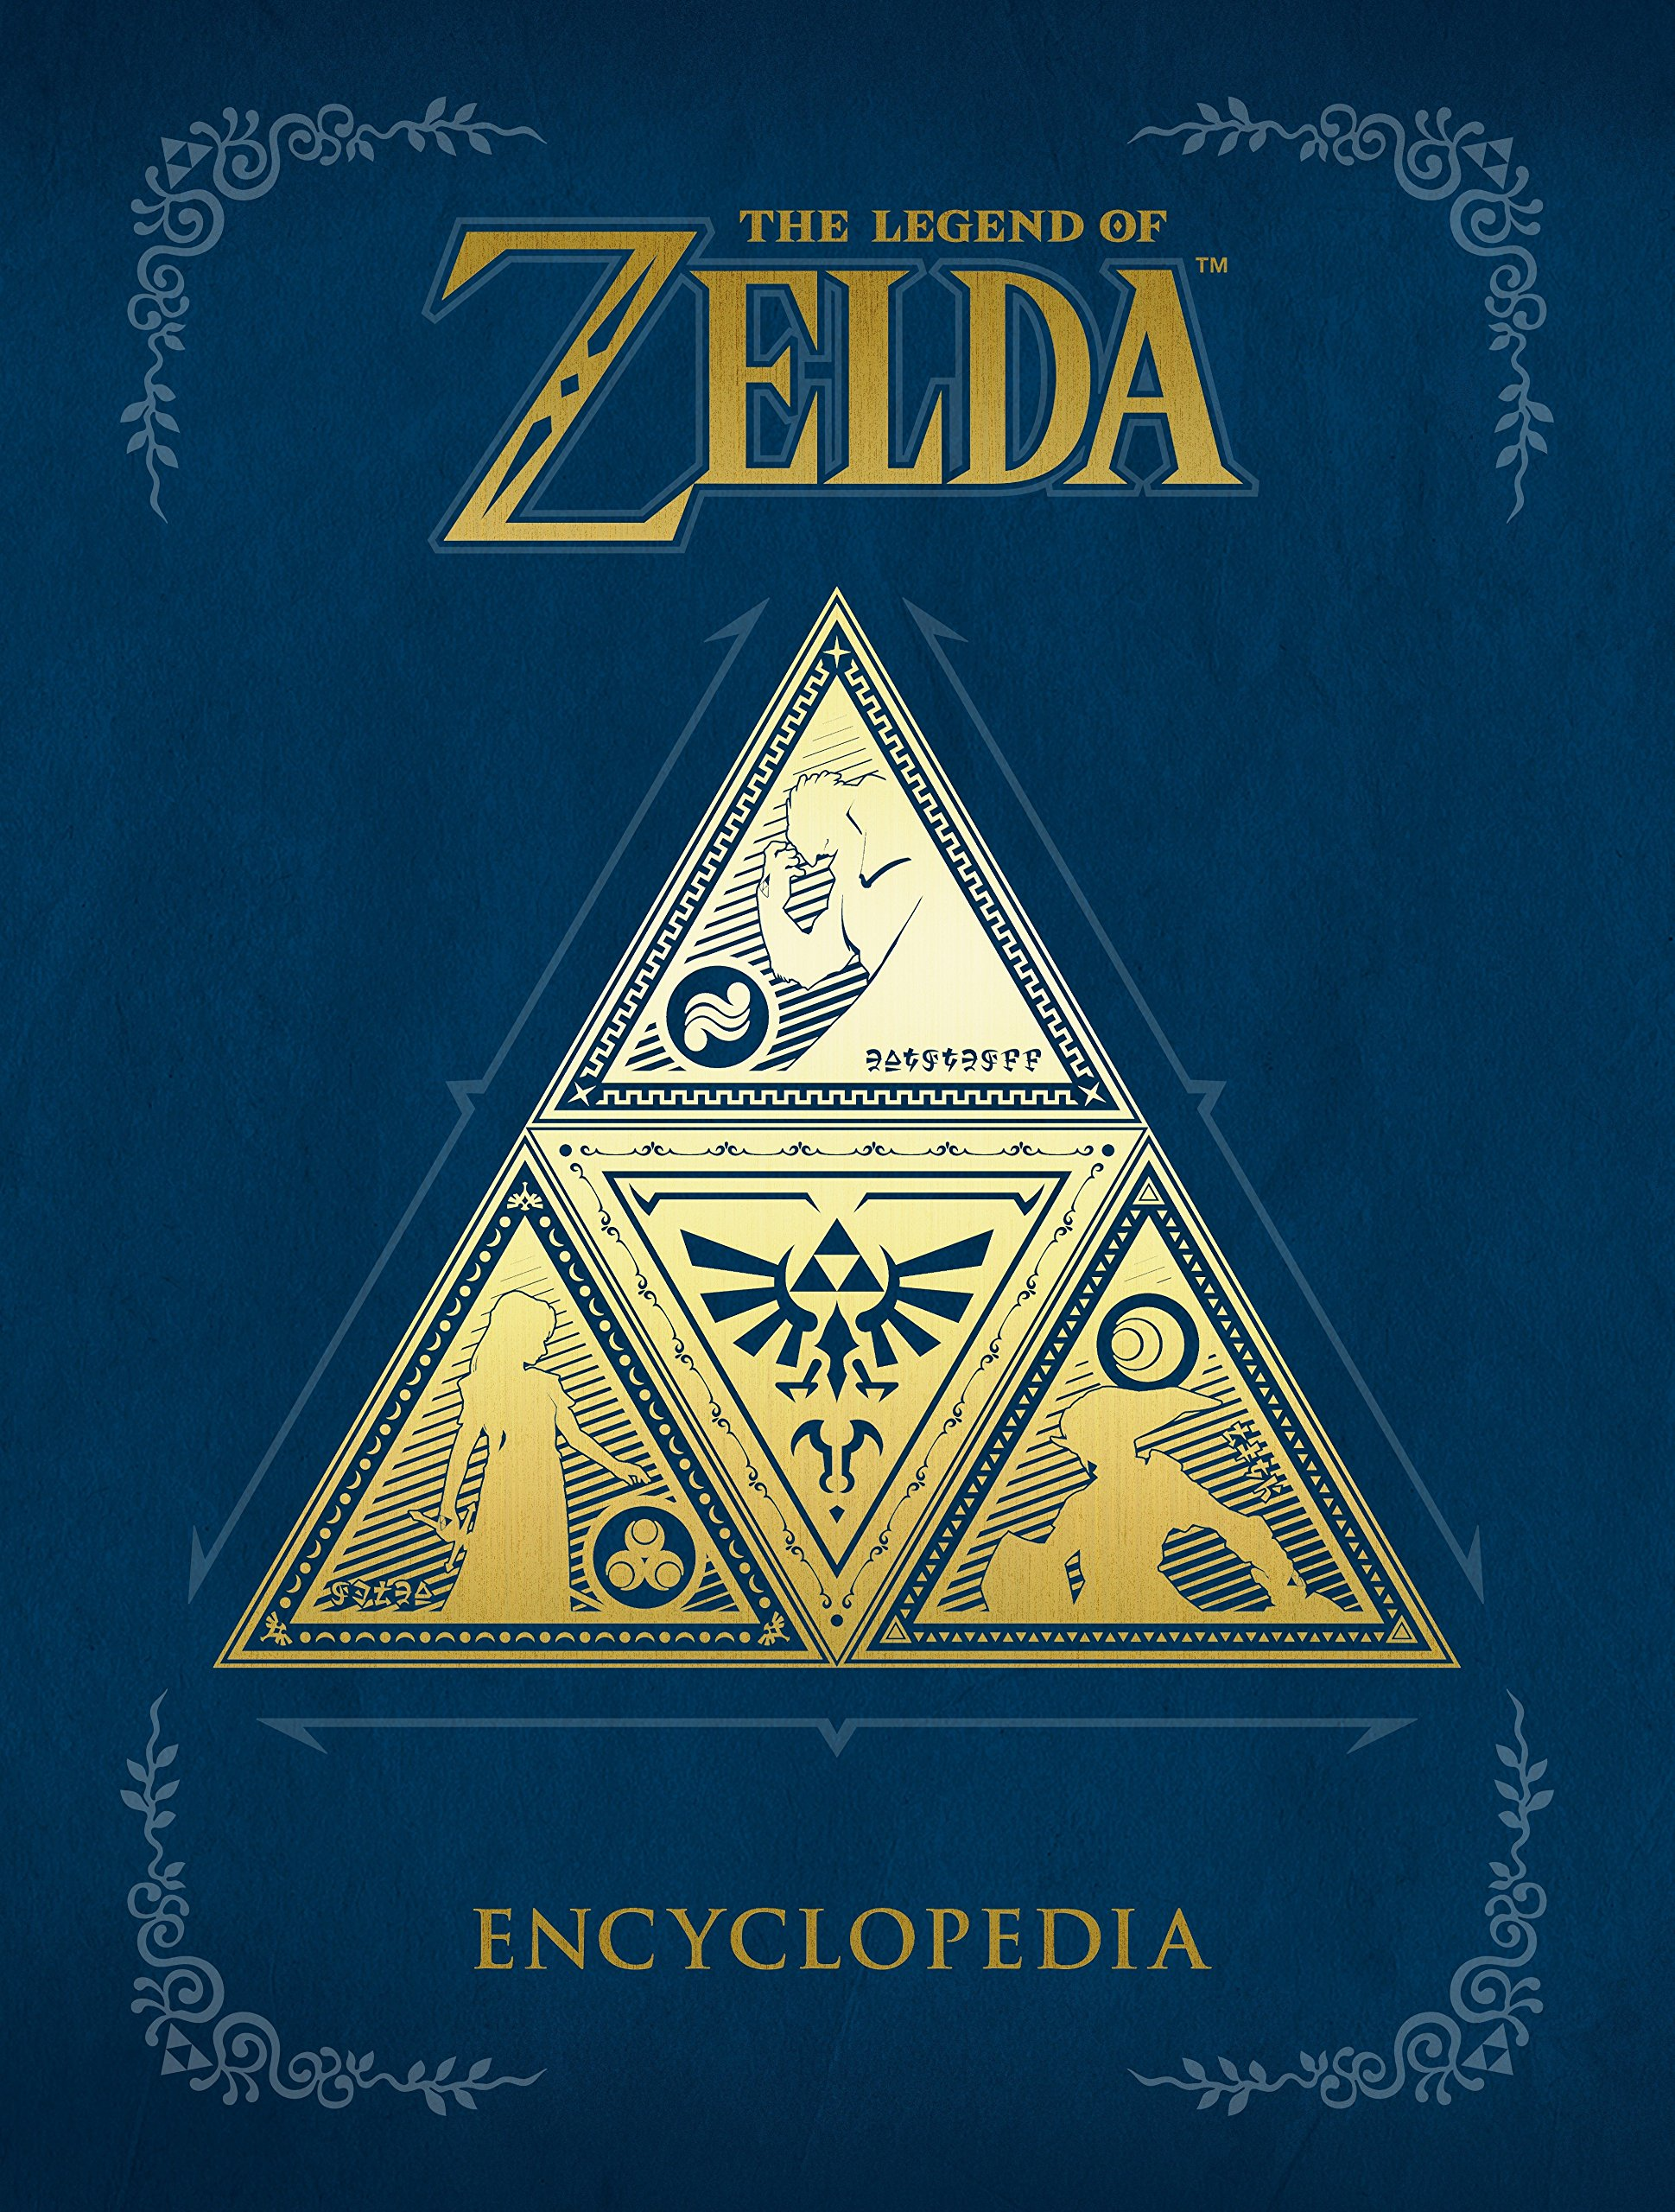 the-legend-of-zelda-encyclopedia-sach-bia-cung